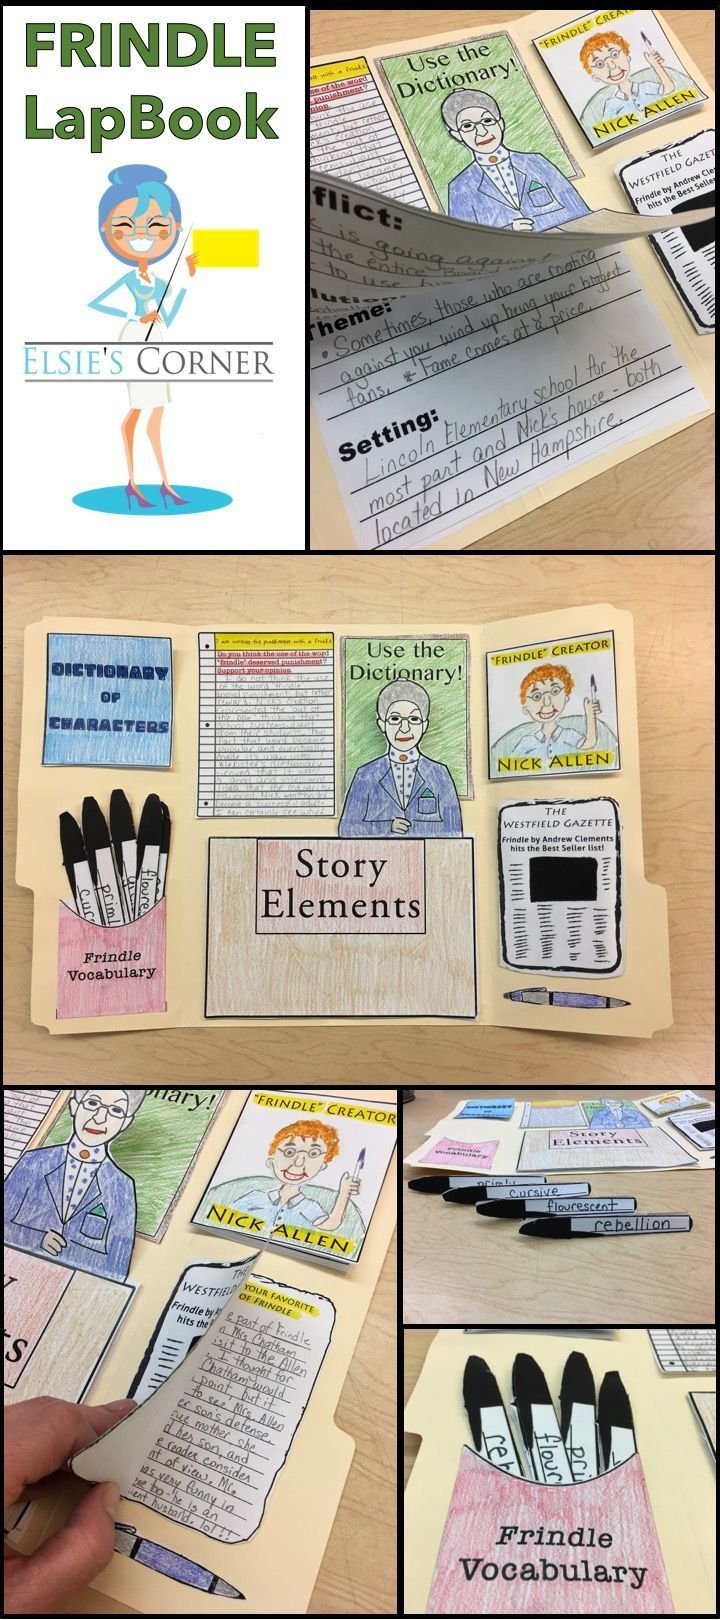 Have students uncover and analyze all of the major story elements of Frindle while working on this creative and innovative Frindle Lapbook.